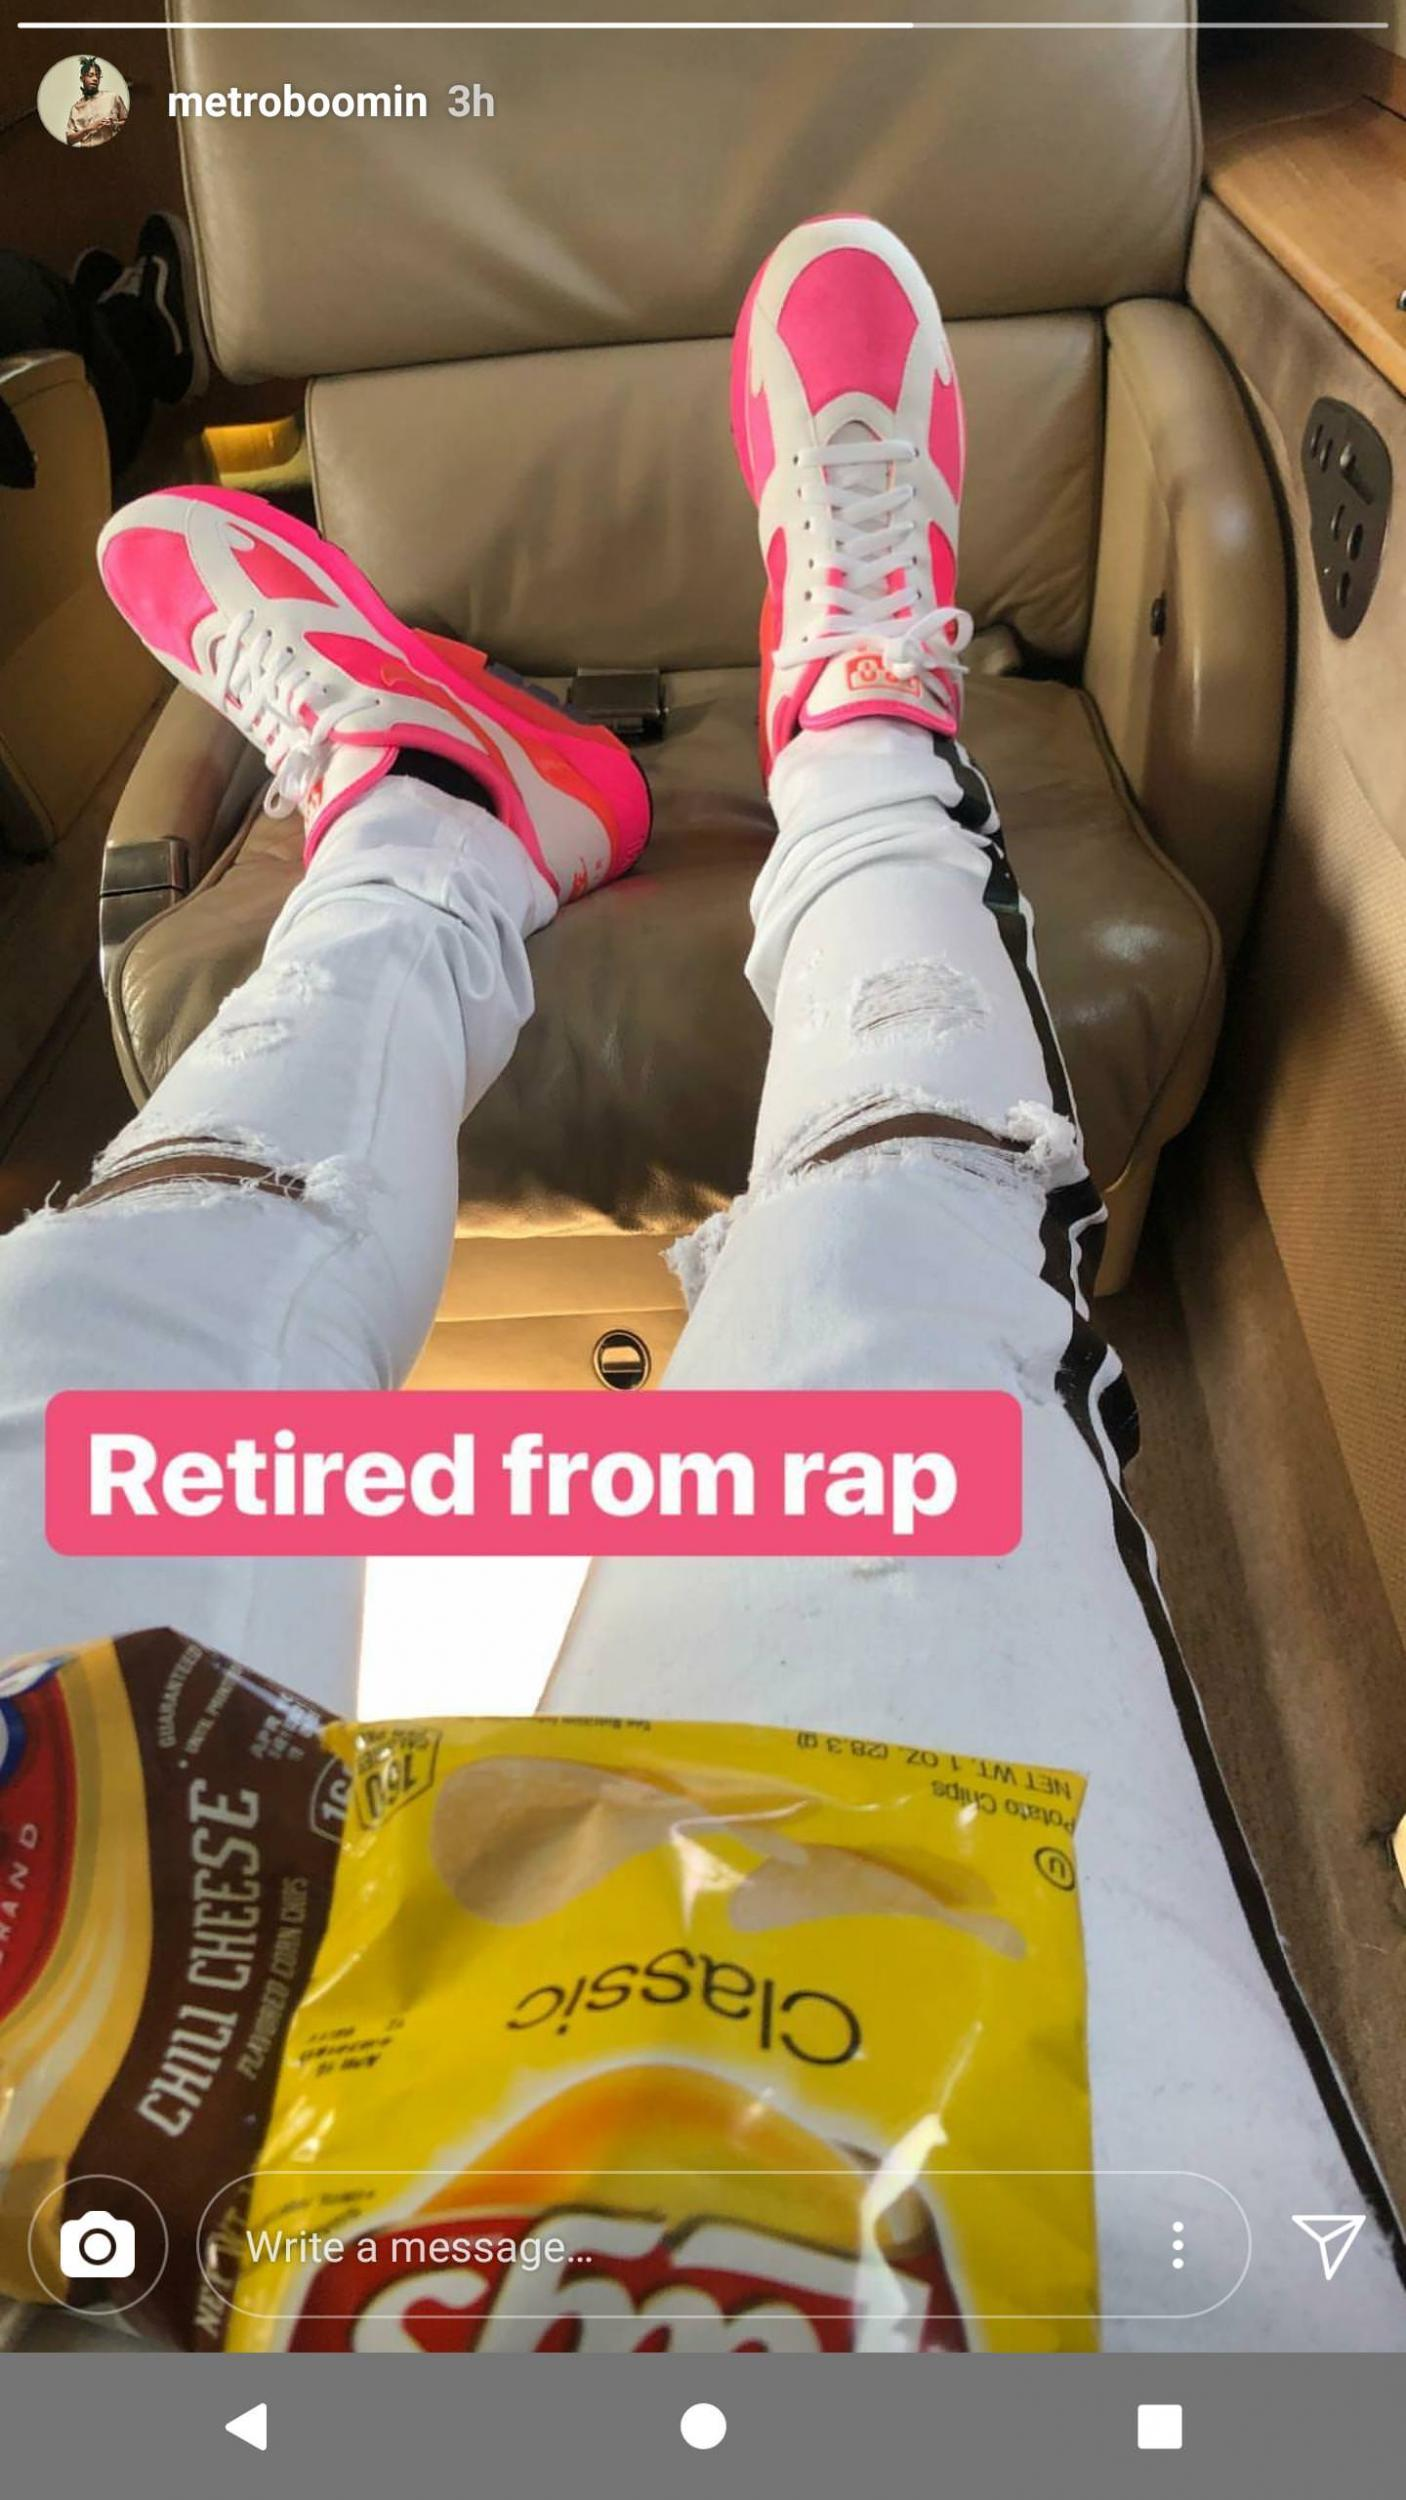 Metro Boomin want no more? Producer claims to have 'retired